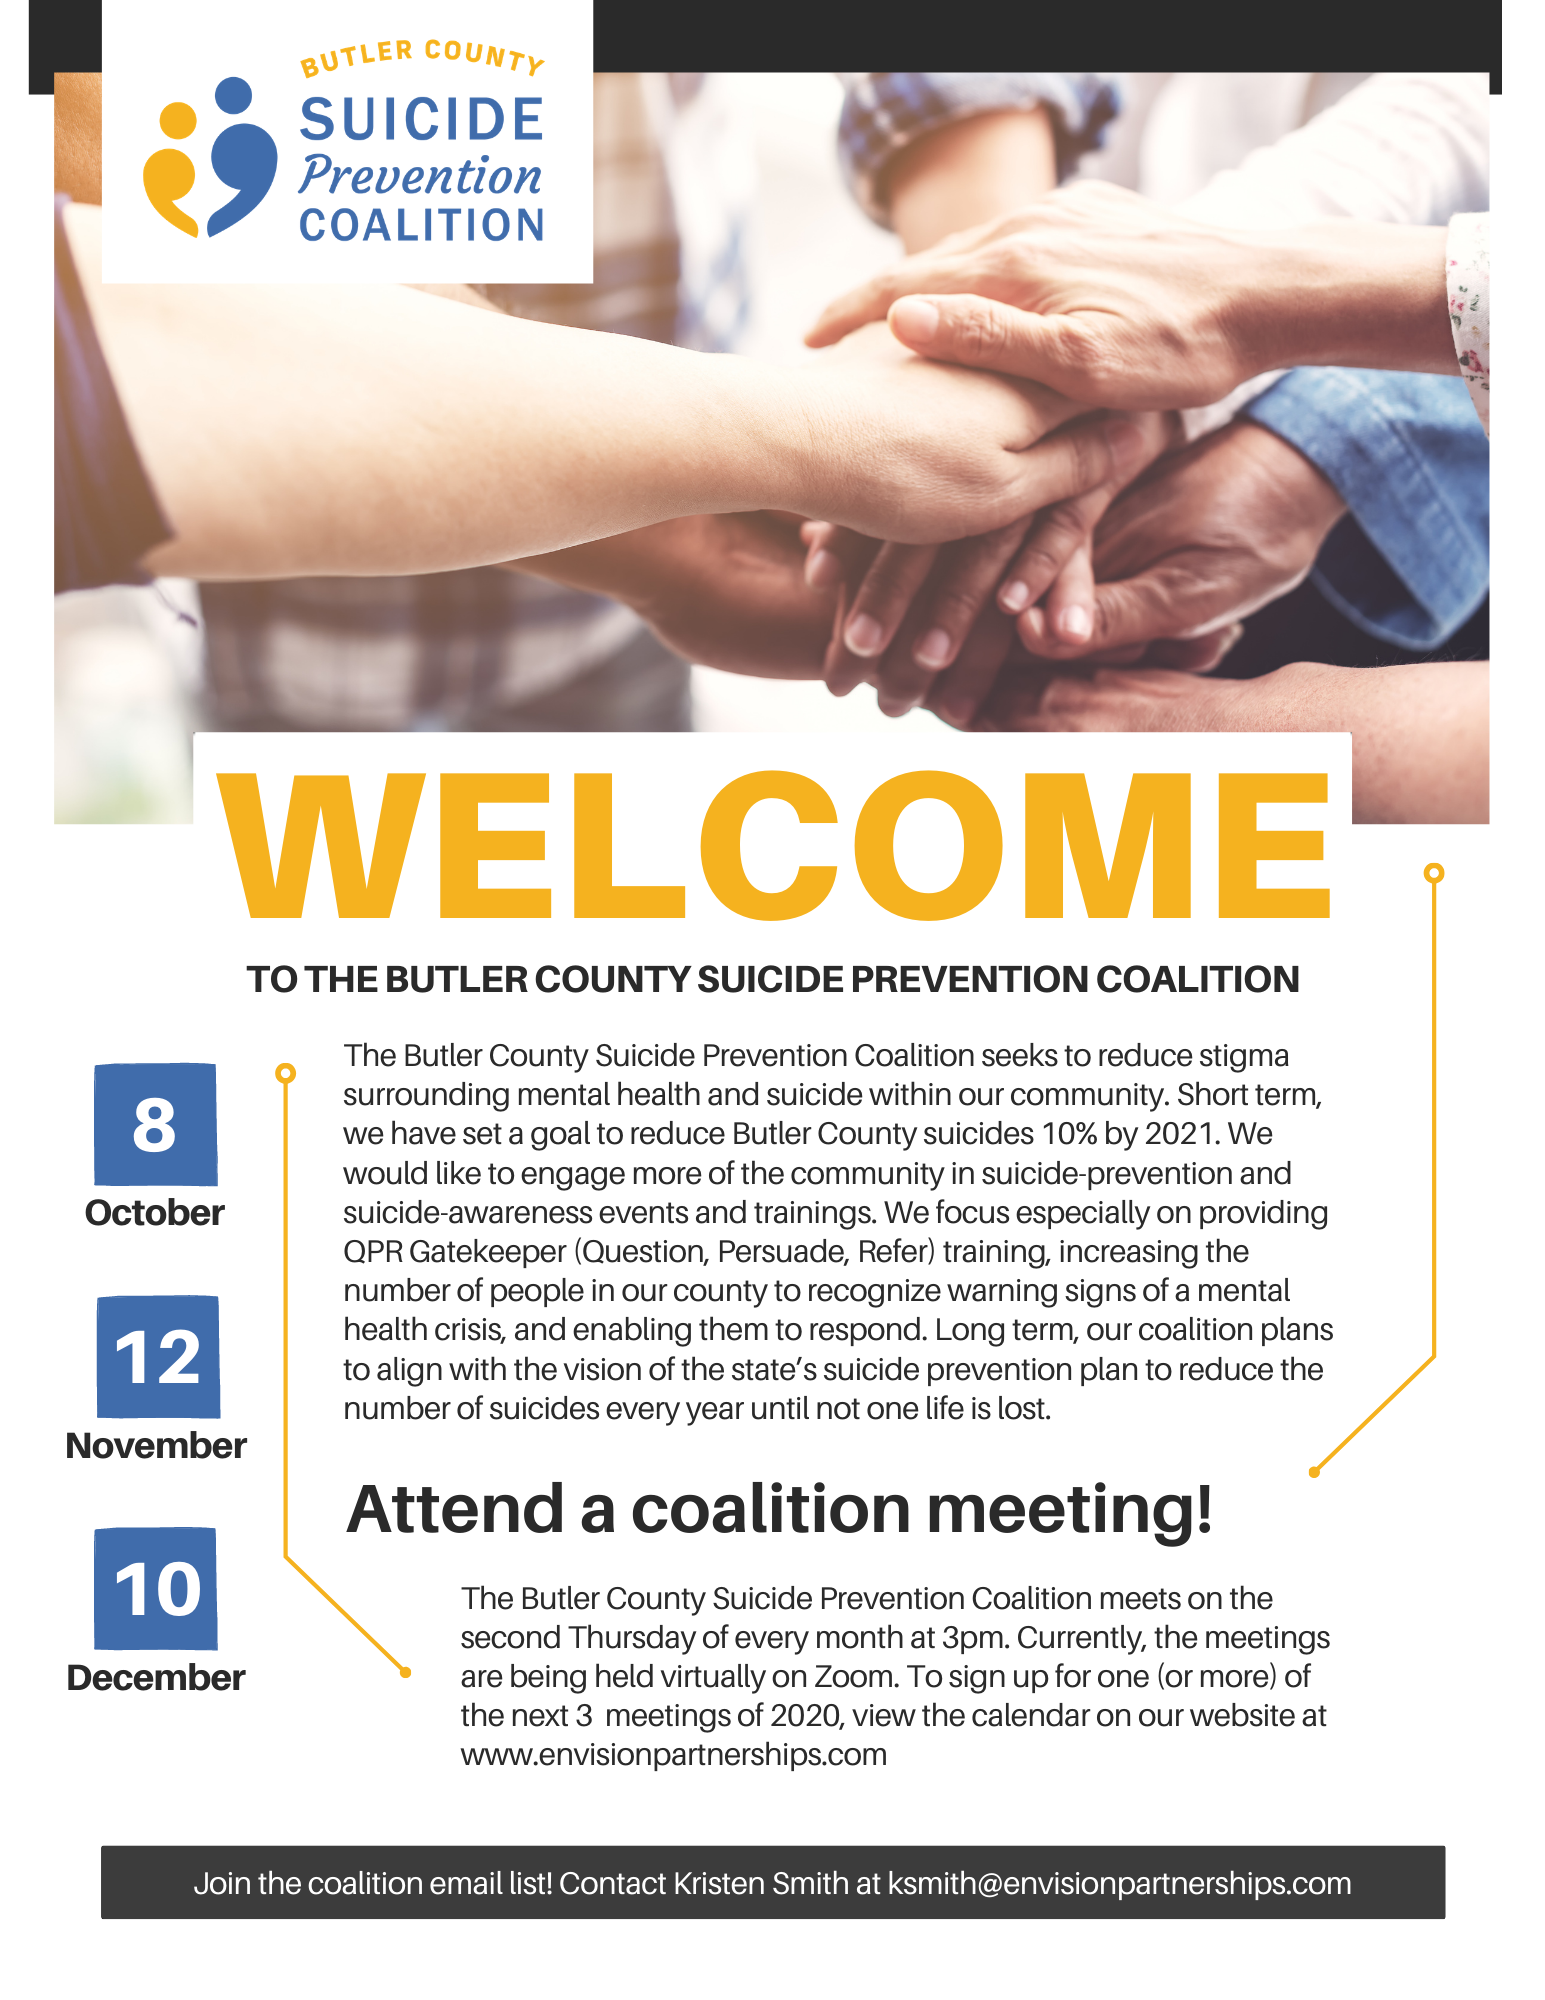 Butler County Suicide Prevention Coalition Meeting